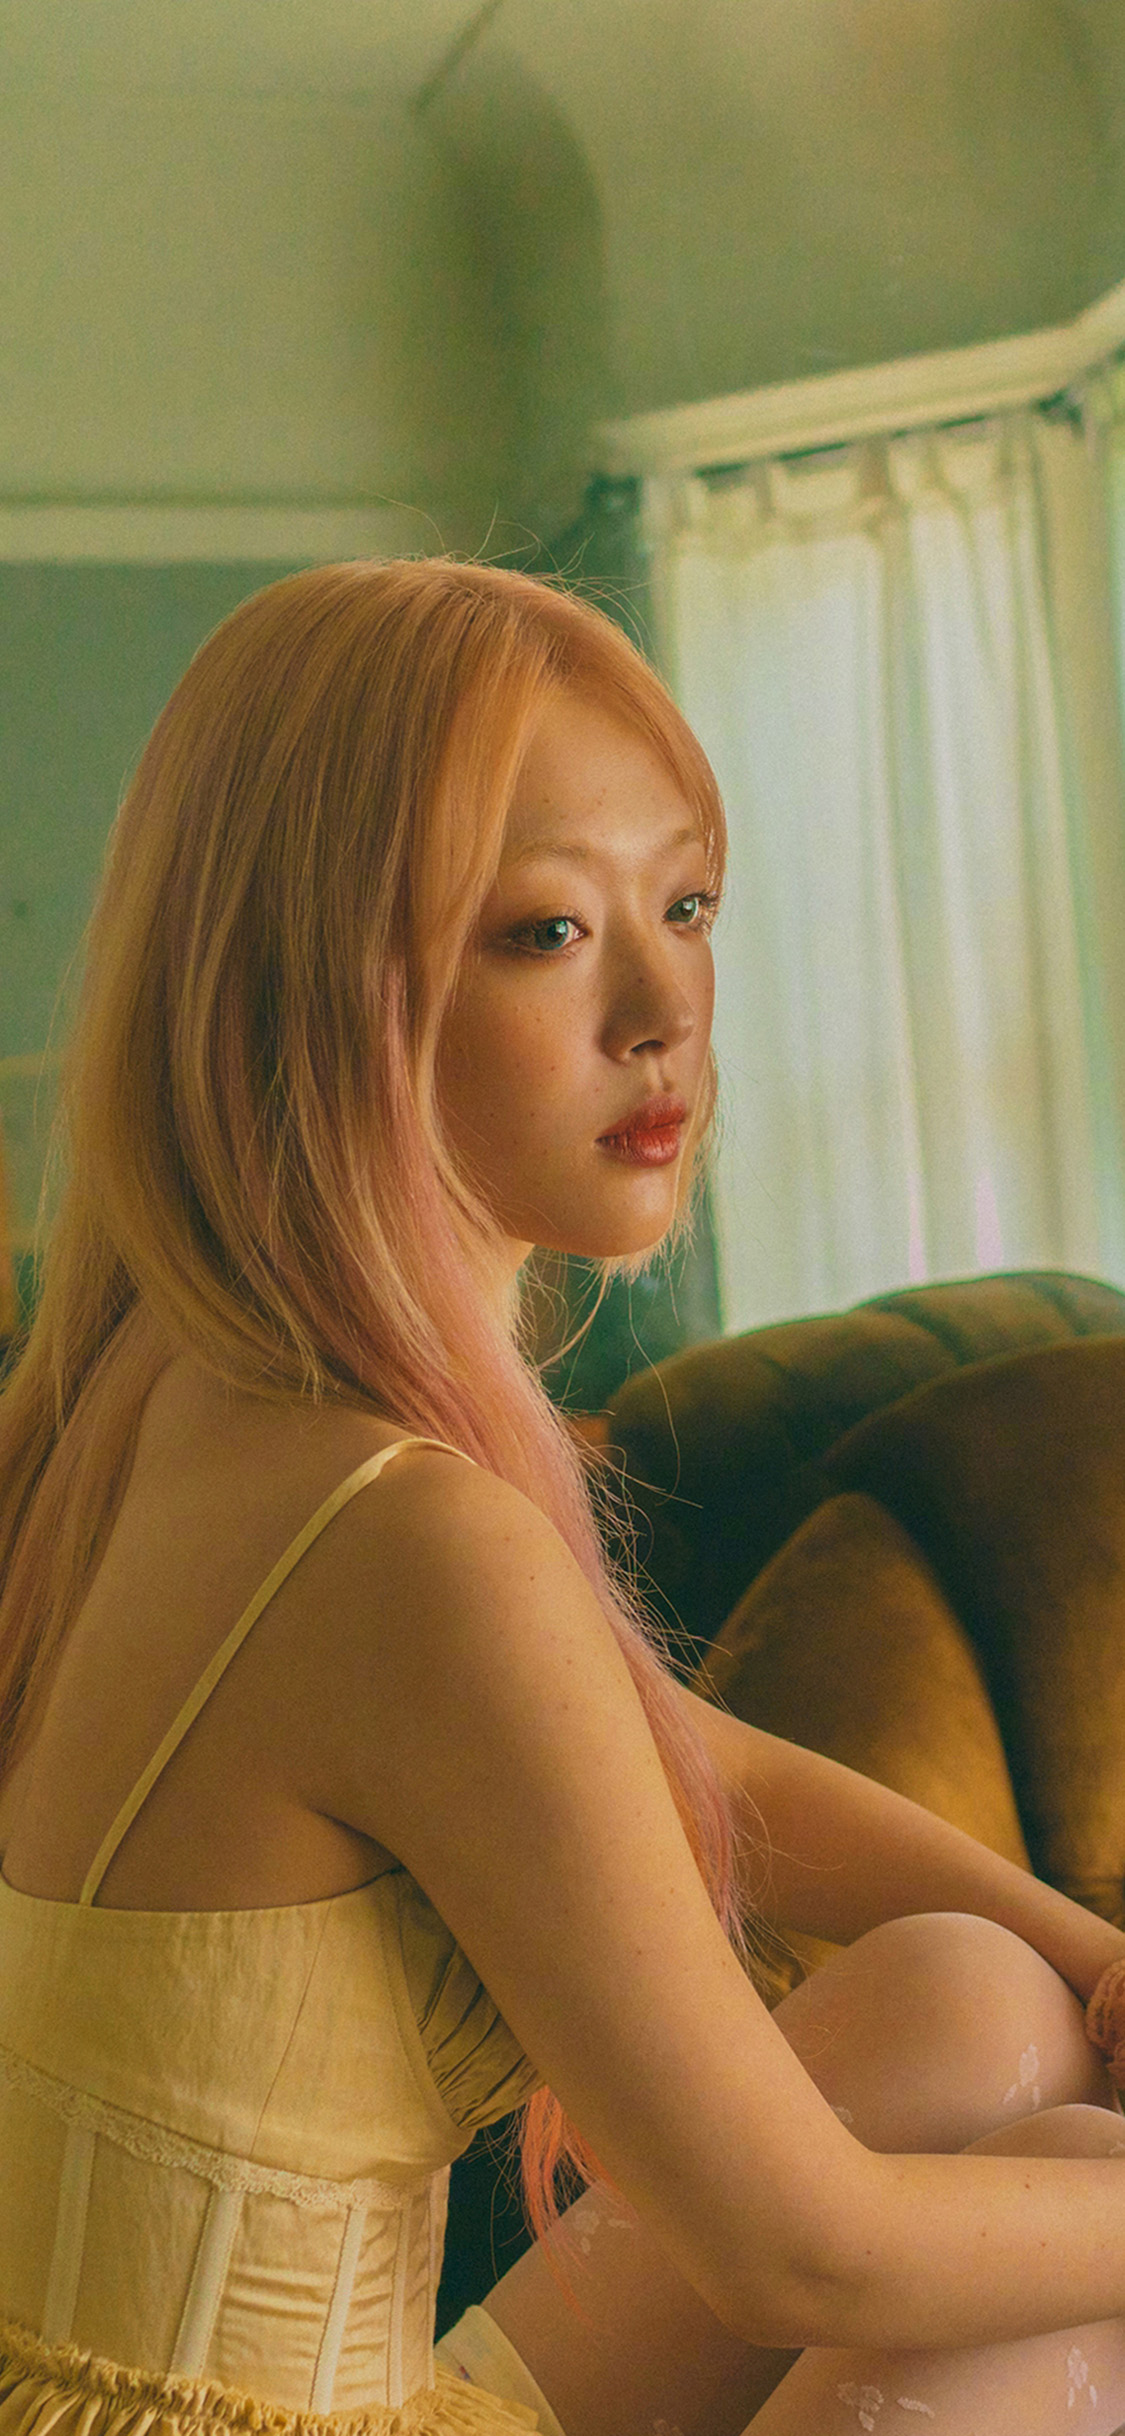 iPhonexpapers.com-Apple-iPhone-wallpaper-ht12-sulli-rip-idol-kpop-girl